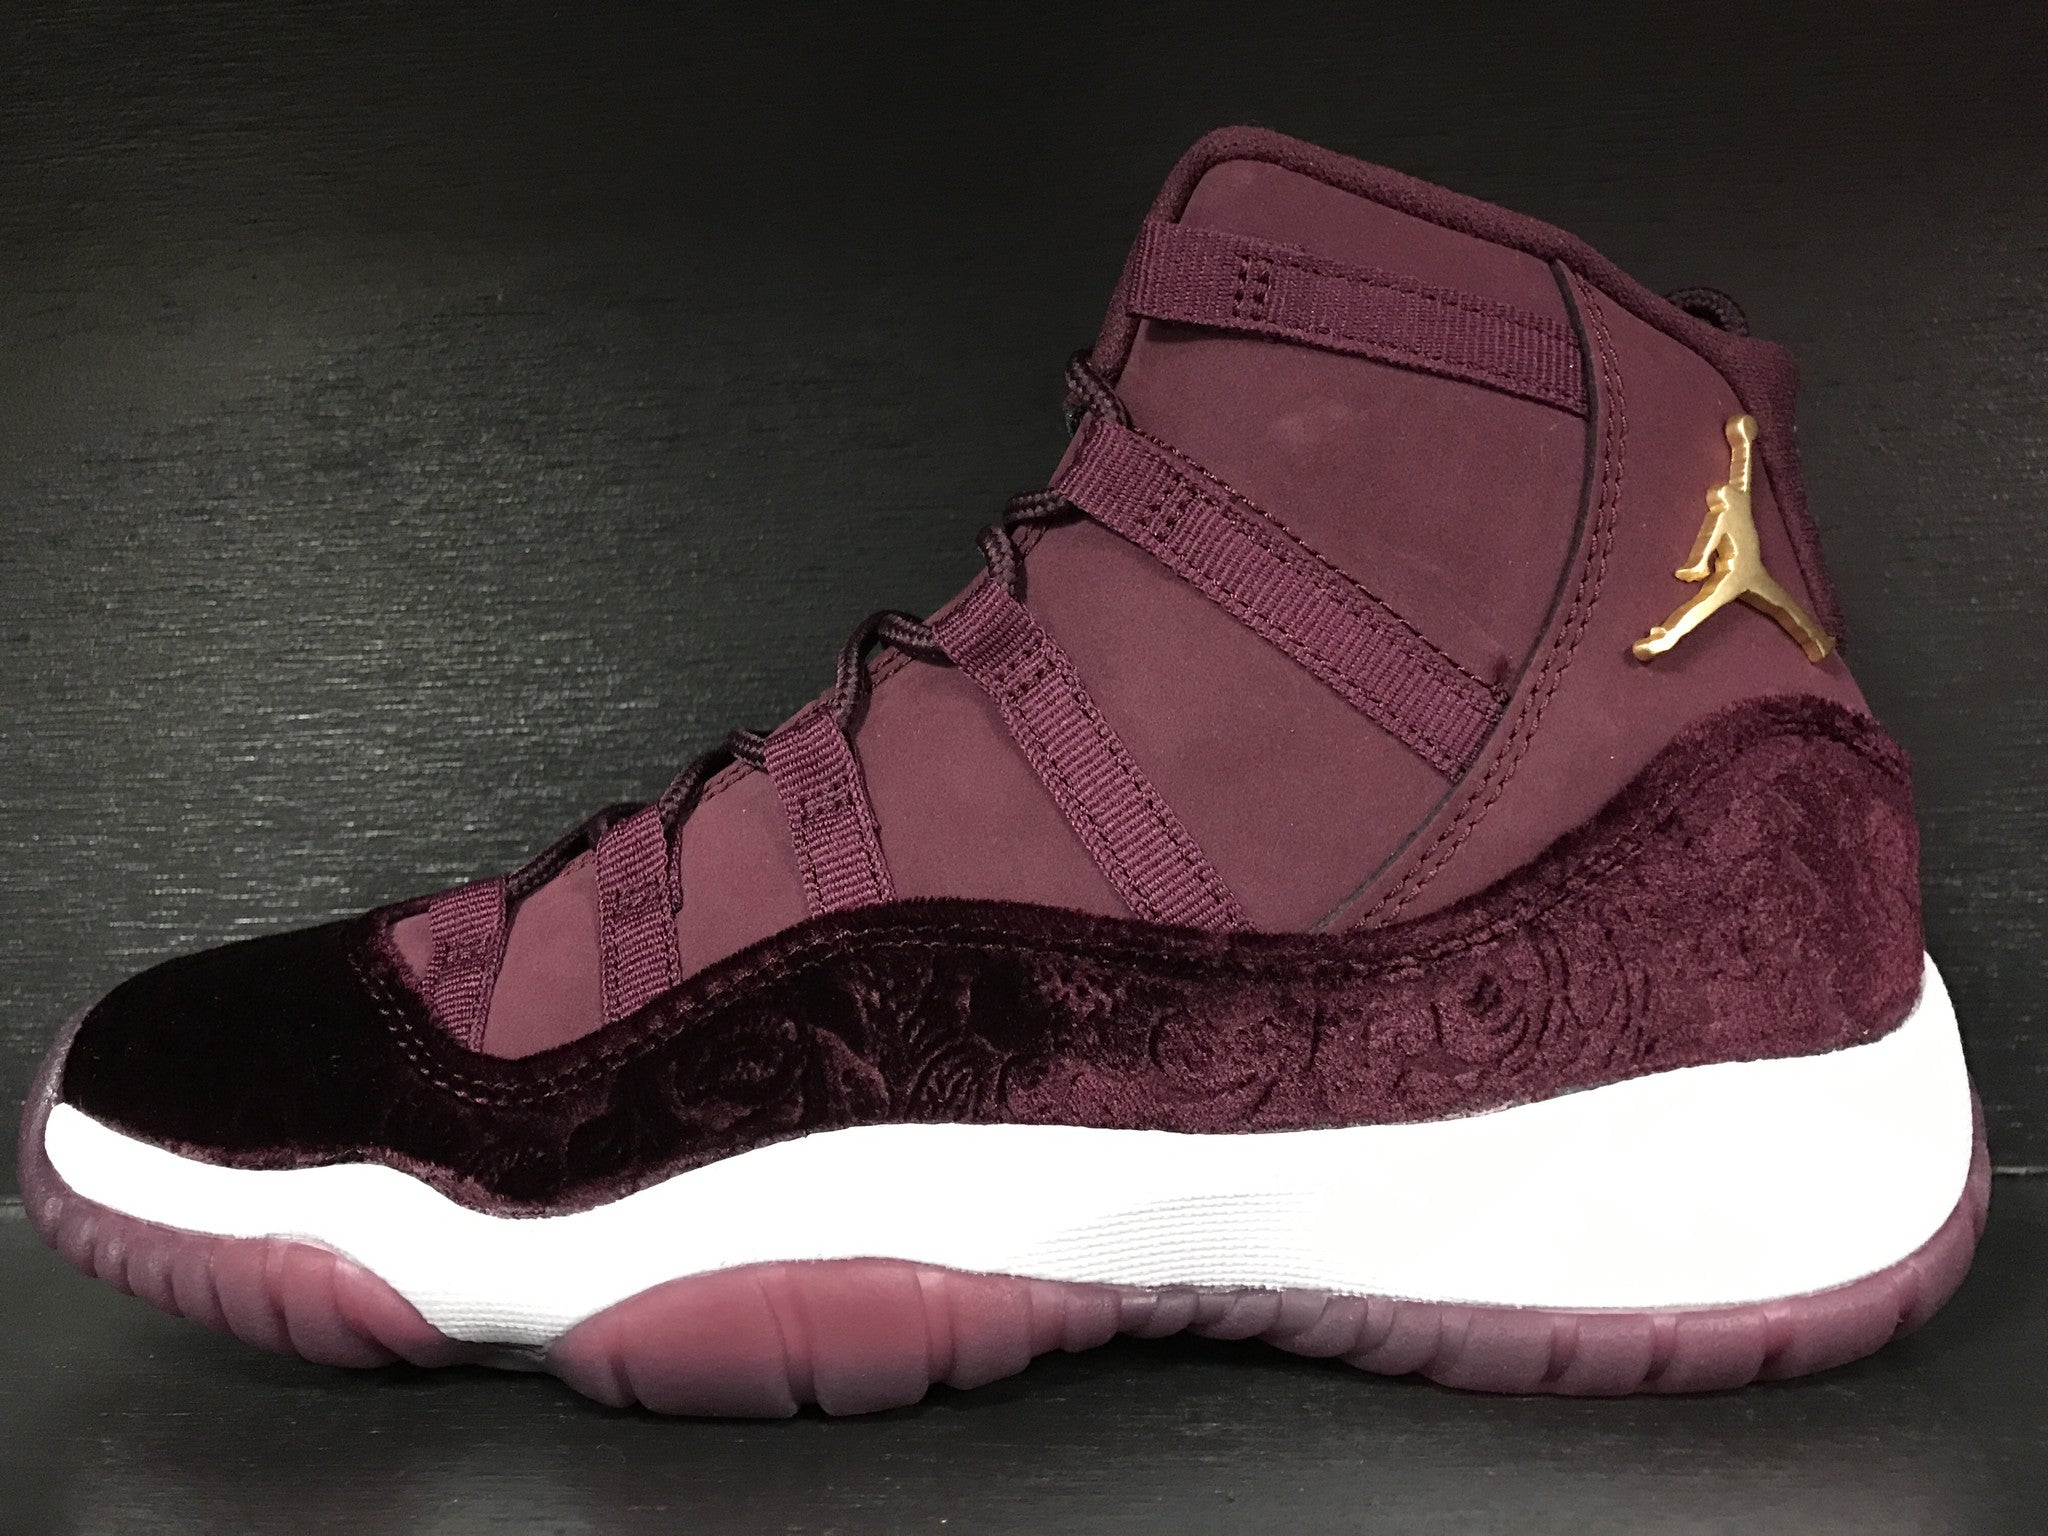 Air Jordan 11 Retro RL GG 'Velvet'